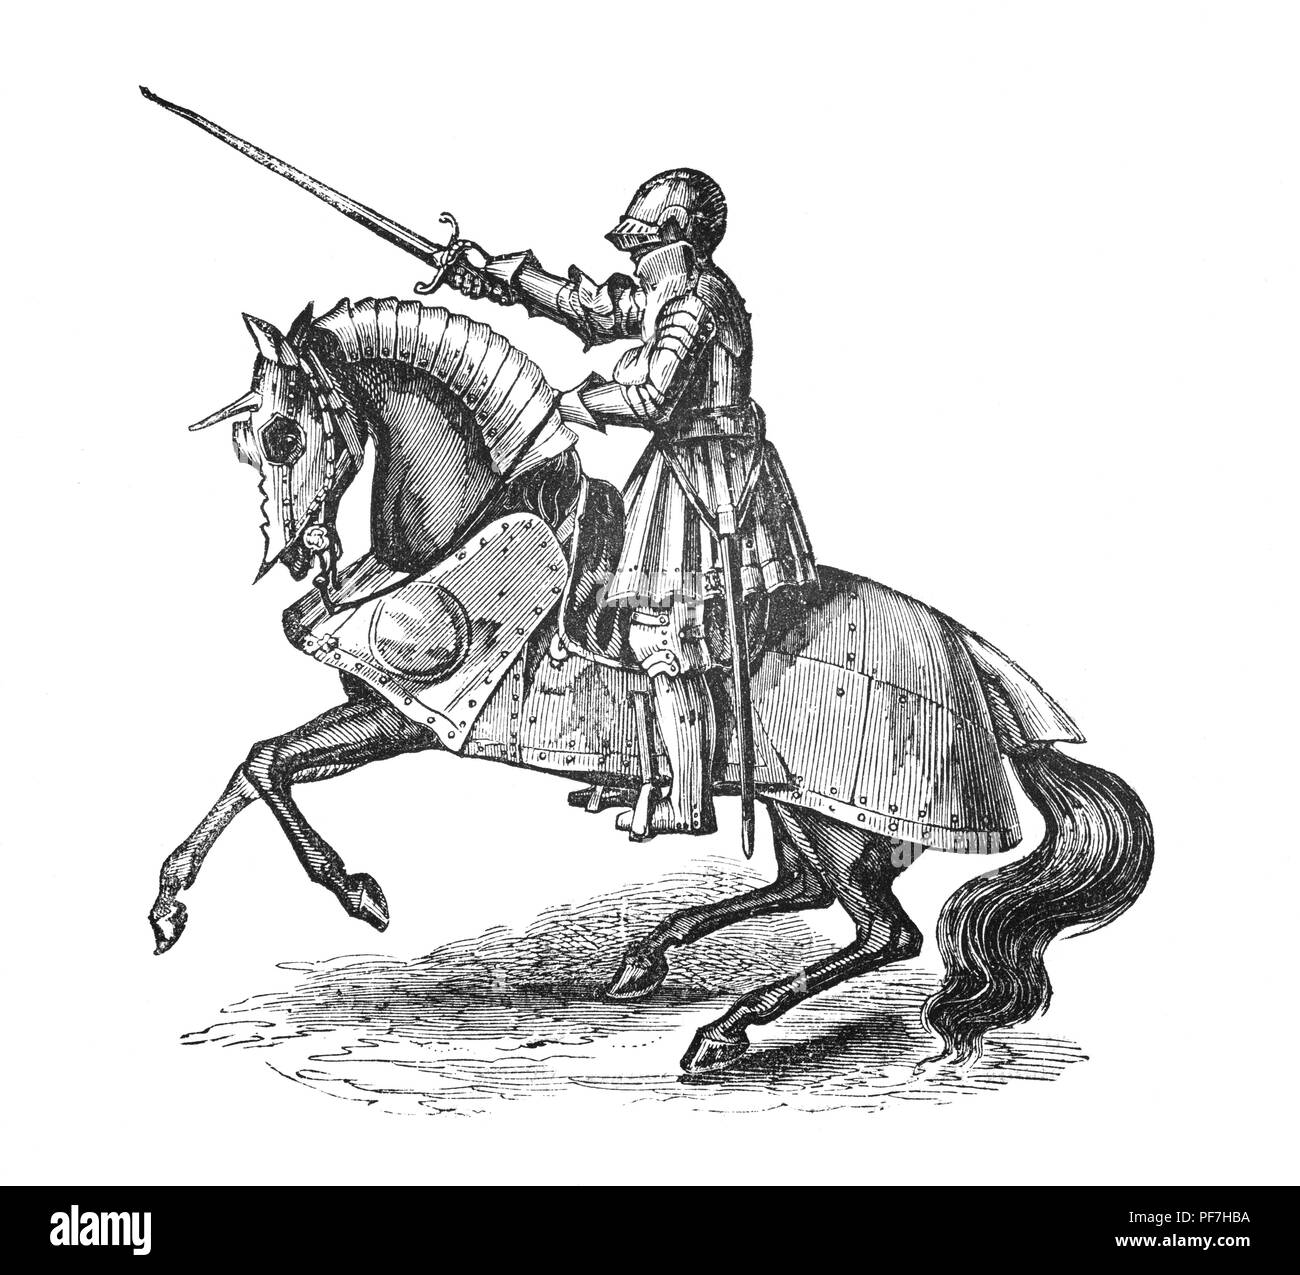 Armour during the reign of Henry VIII continued to be notable for its increasing decoration and armourers offered a large assortment of styles for a knight to choose from. The illustration shows a mounted knight with lamboys, plates of steel that imitated folds of drapery were used and cut to fit into the saddle and offer lower body protection. - Stock Image